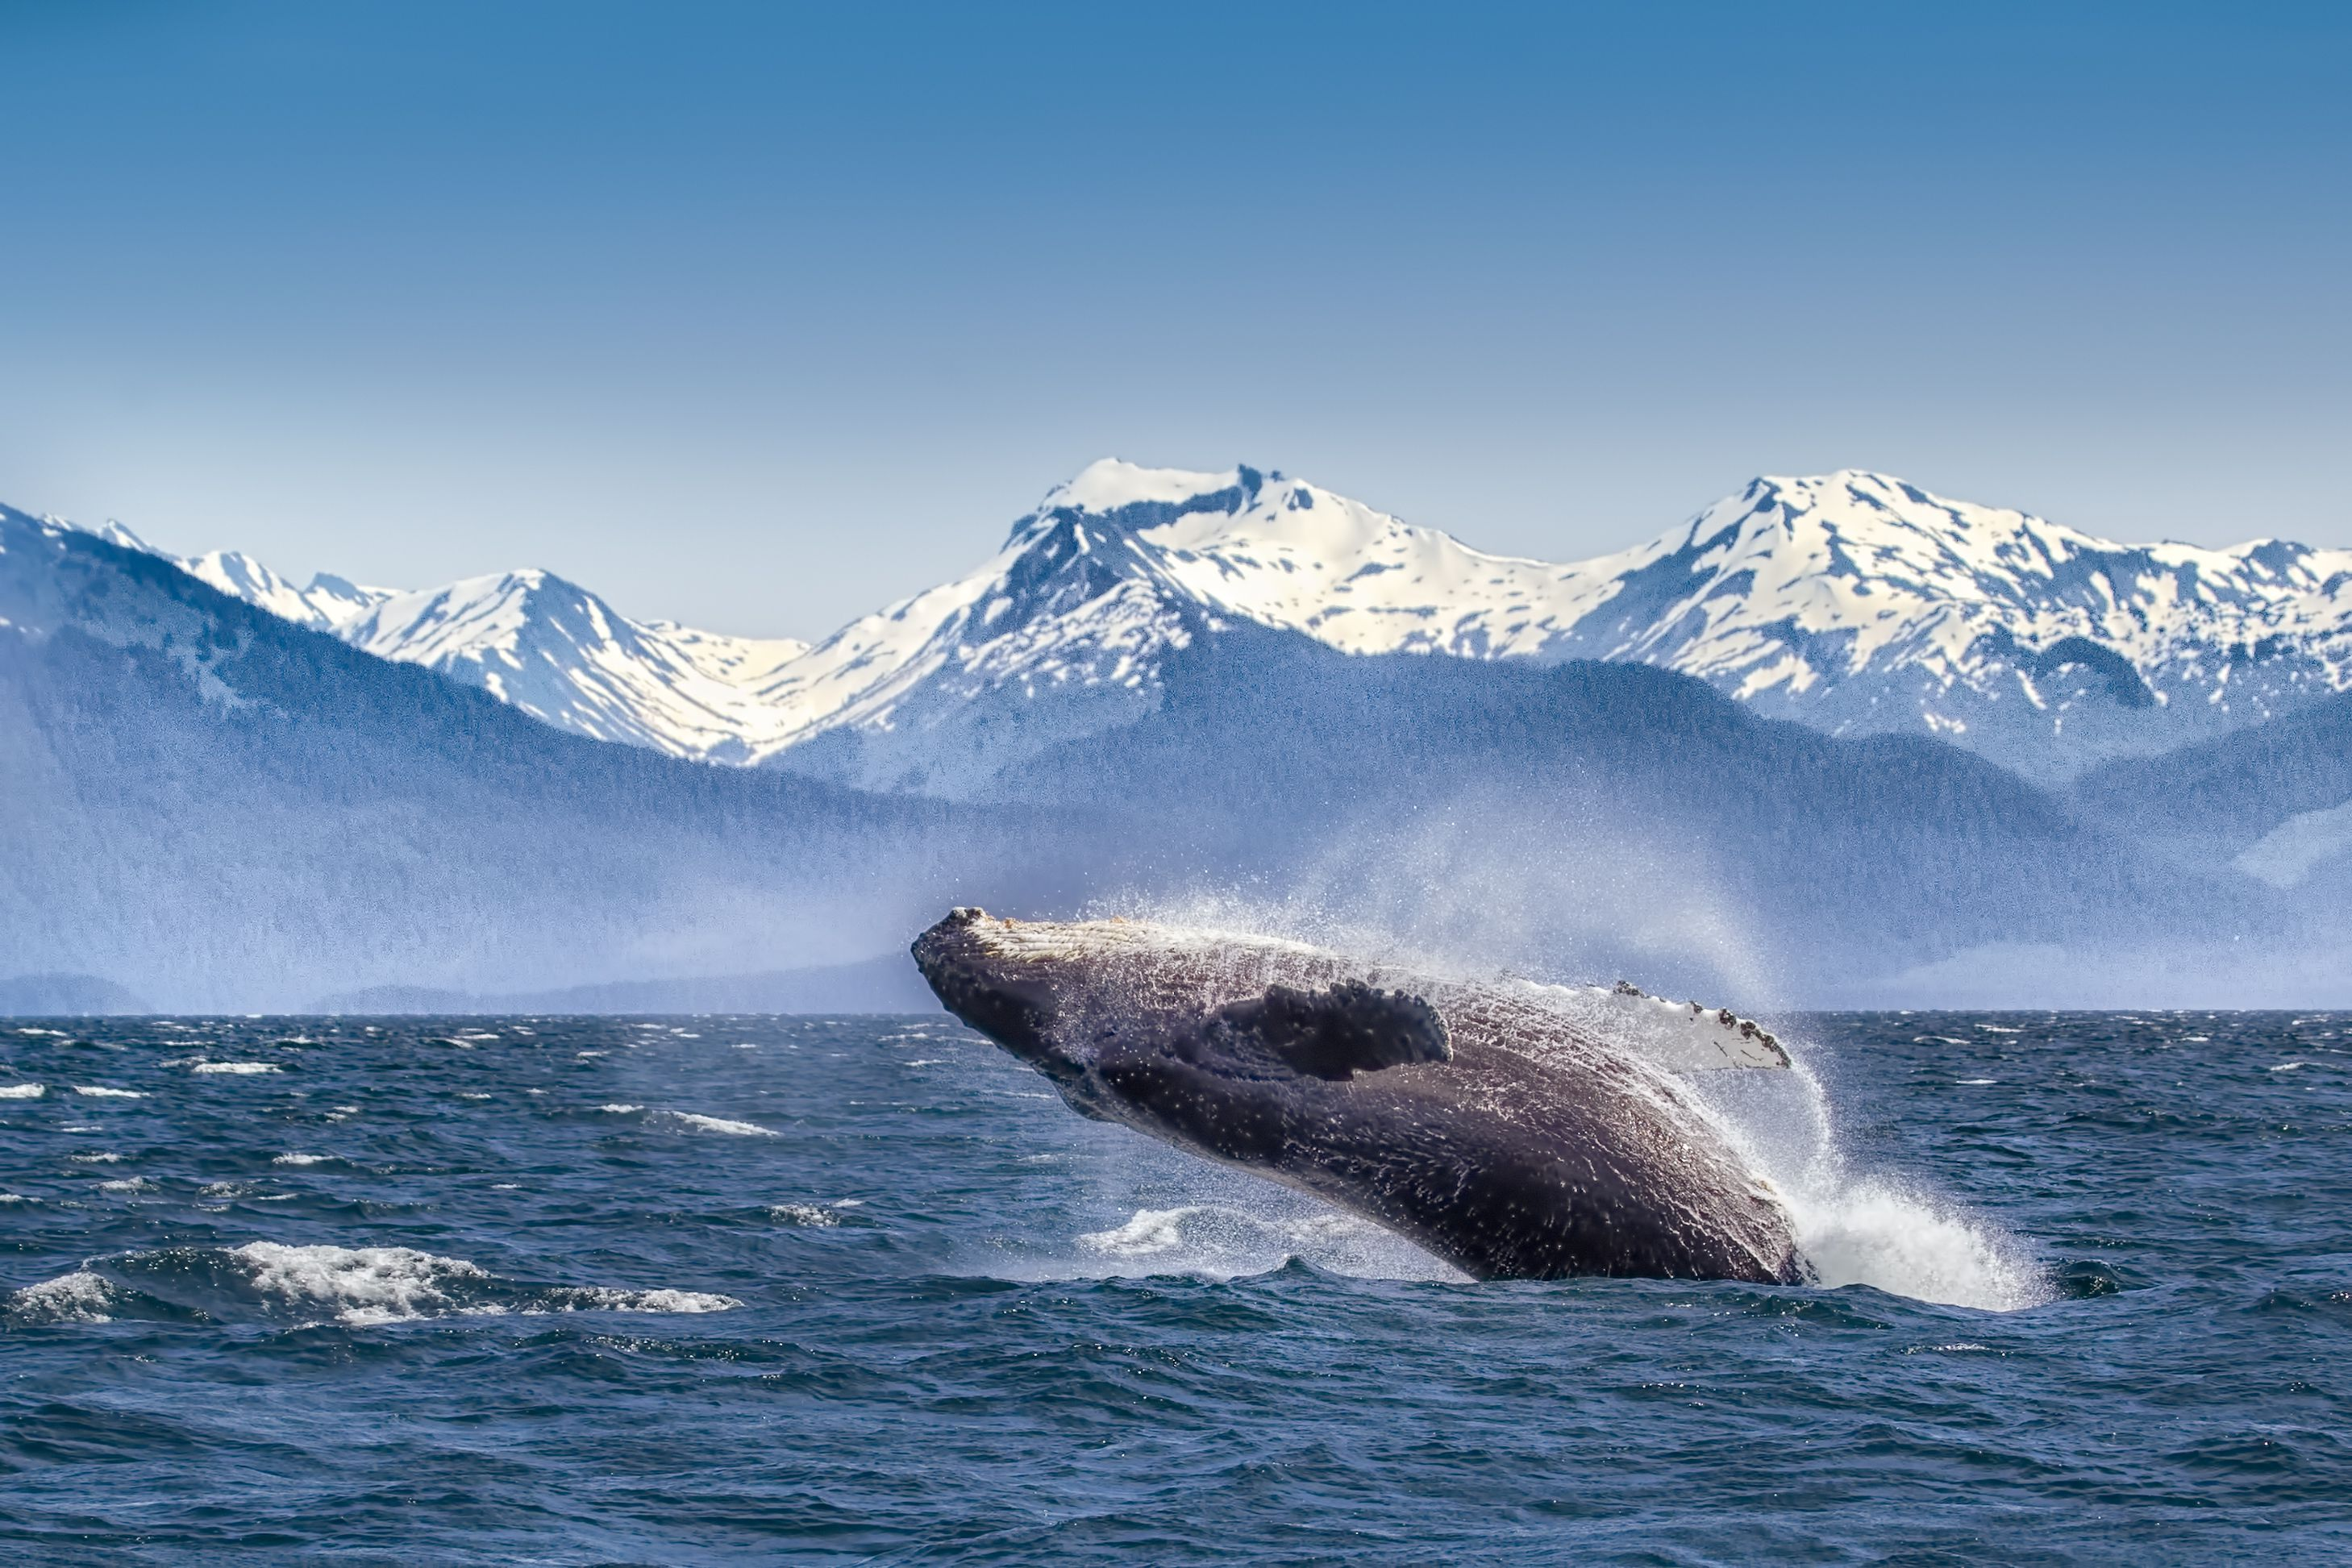 Whale jumping in the ocean with snowy mountains in the background.